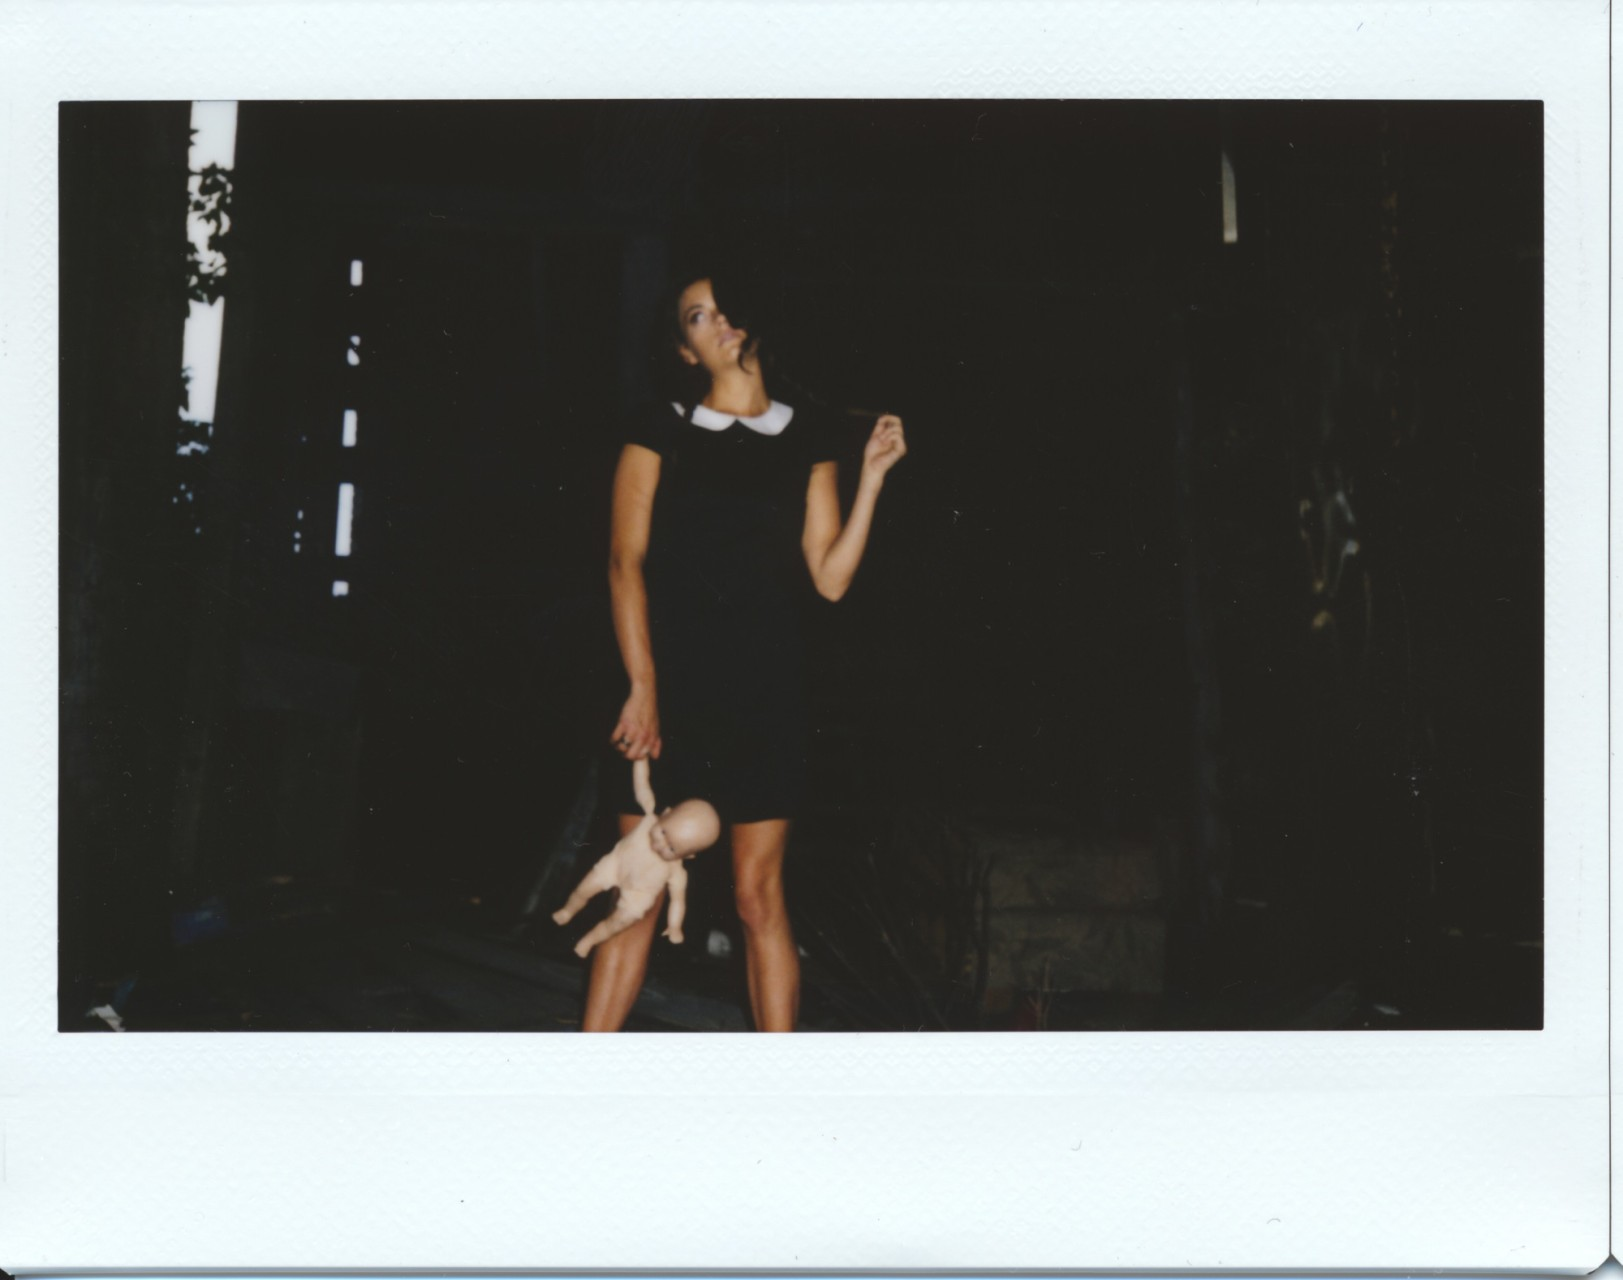 Polaroid-web_Scan-140813-00070007